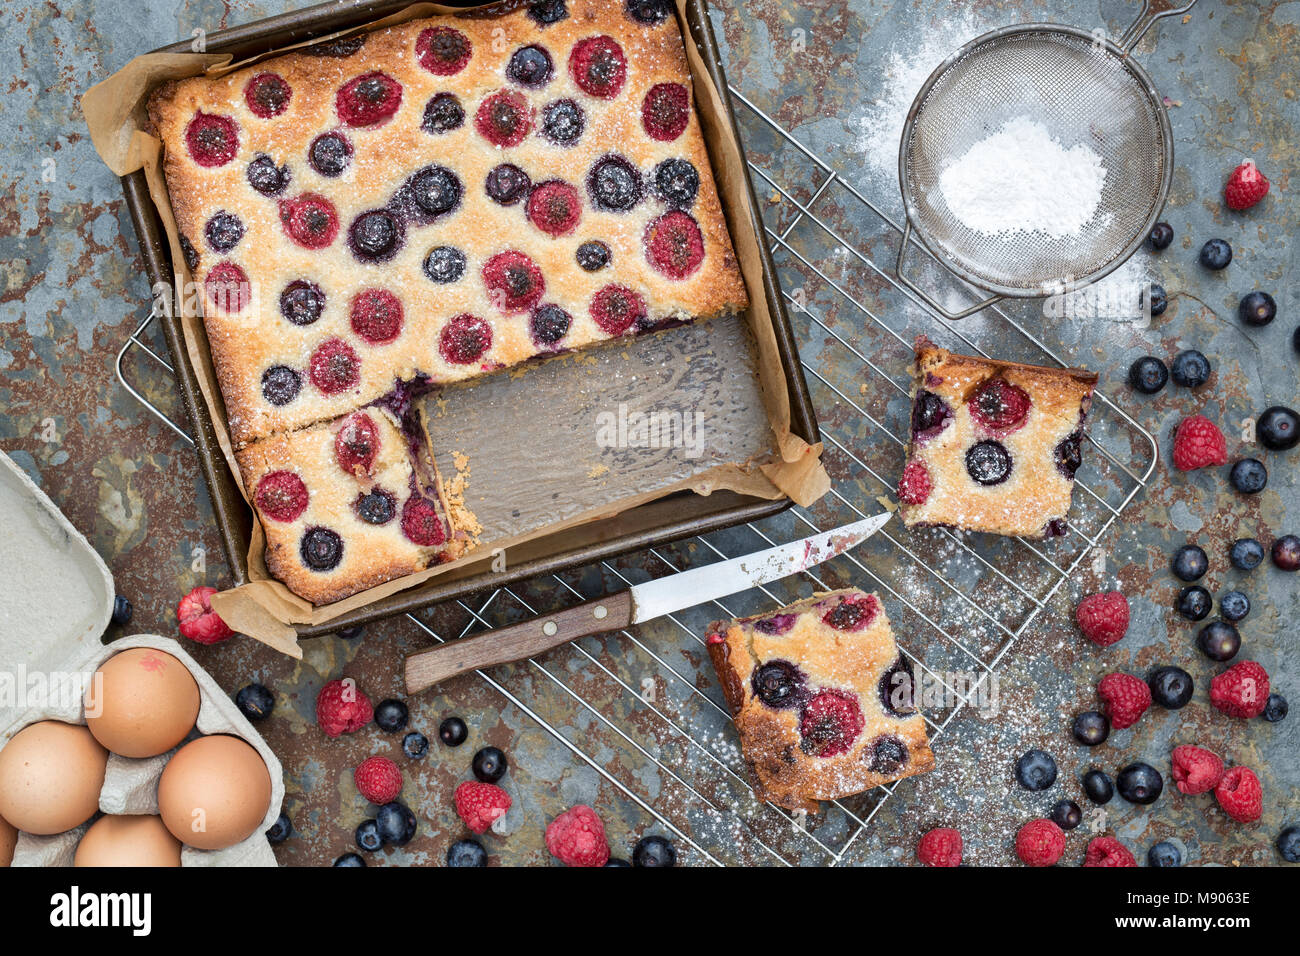 Homemade raspberry and blueberry frangipane tart with ingredients on a slate background - Stock Image